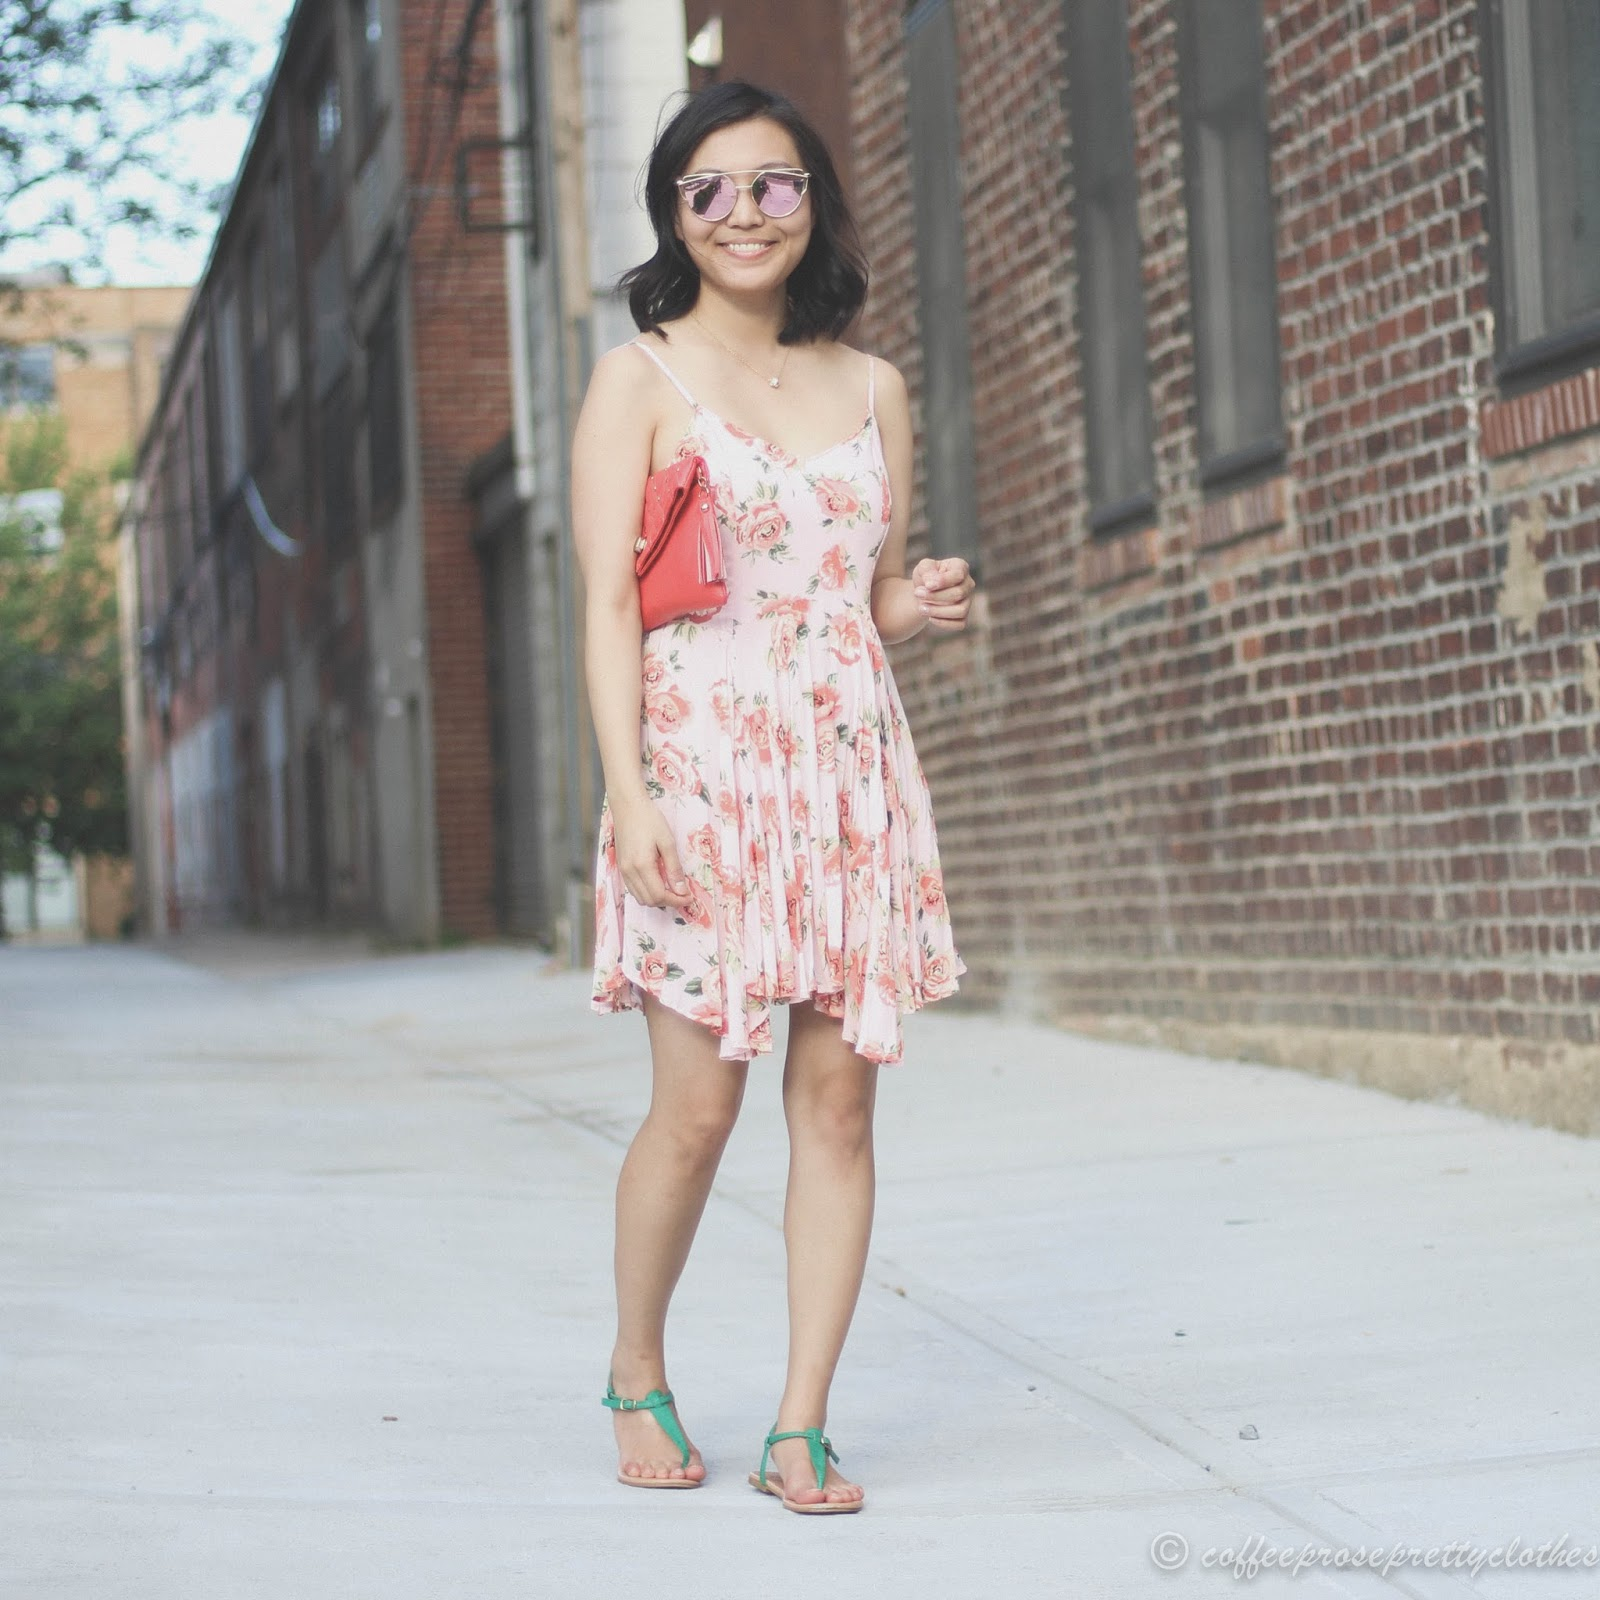 Rose gold cat eye sunglasses, floral dress, handkerchief hem, uneven hemline dress, sandals